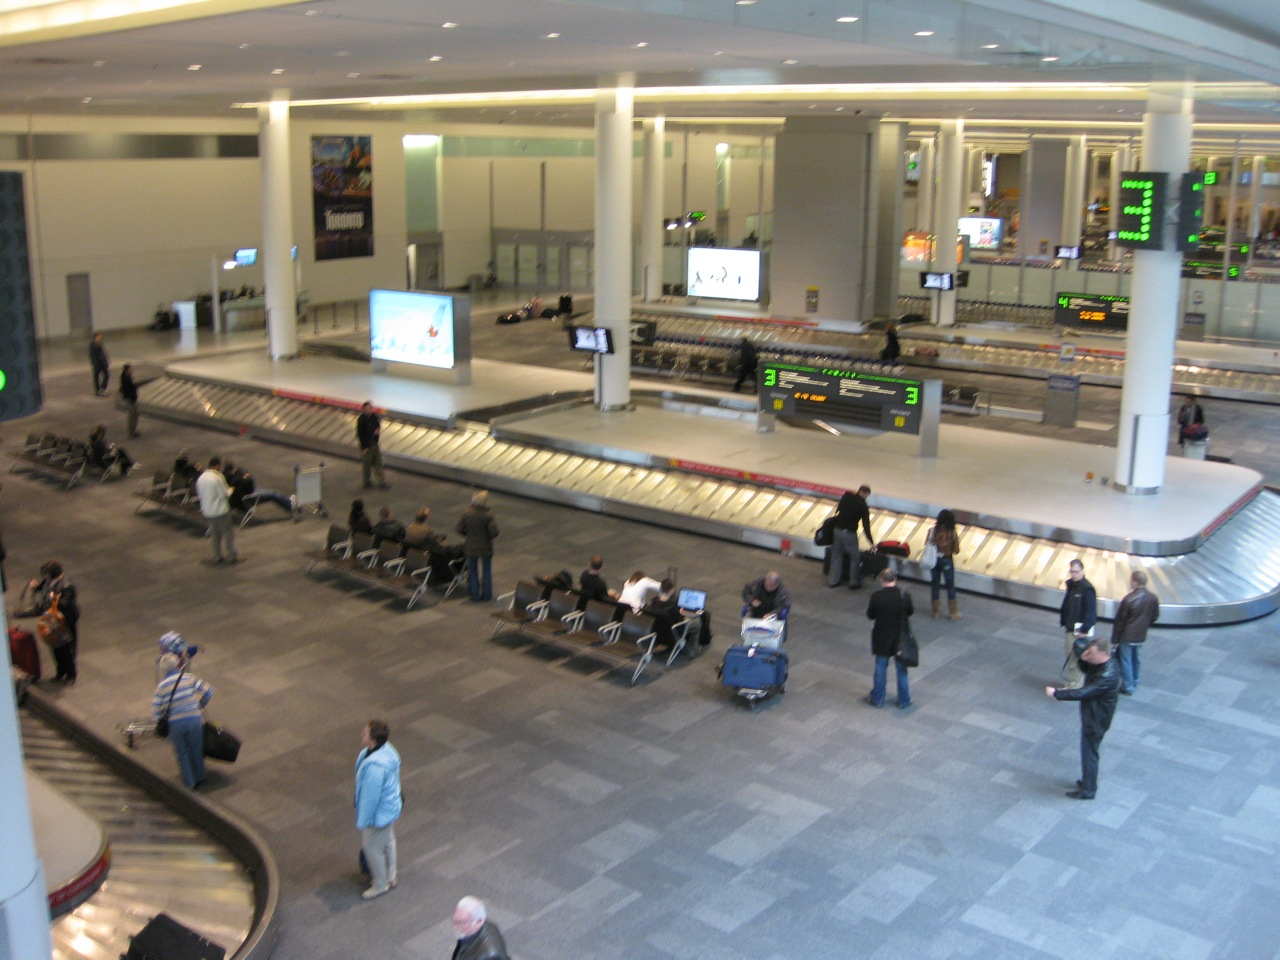 Pearson Airport - Baggage Claim